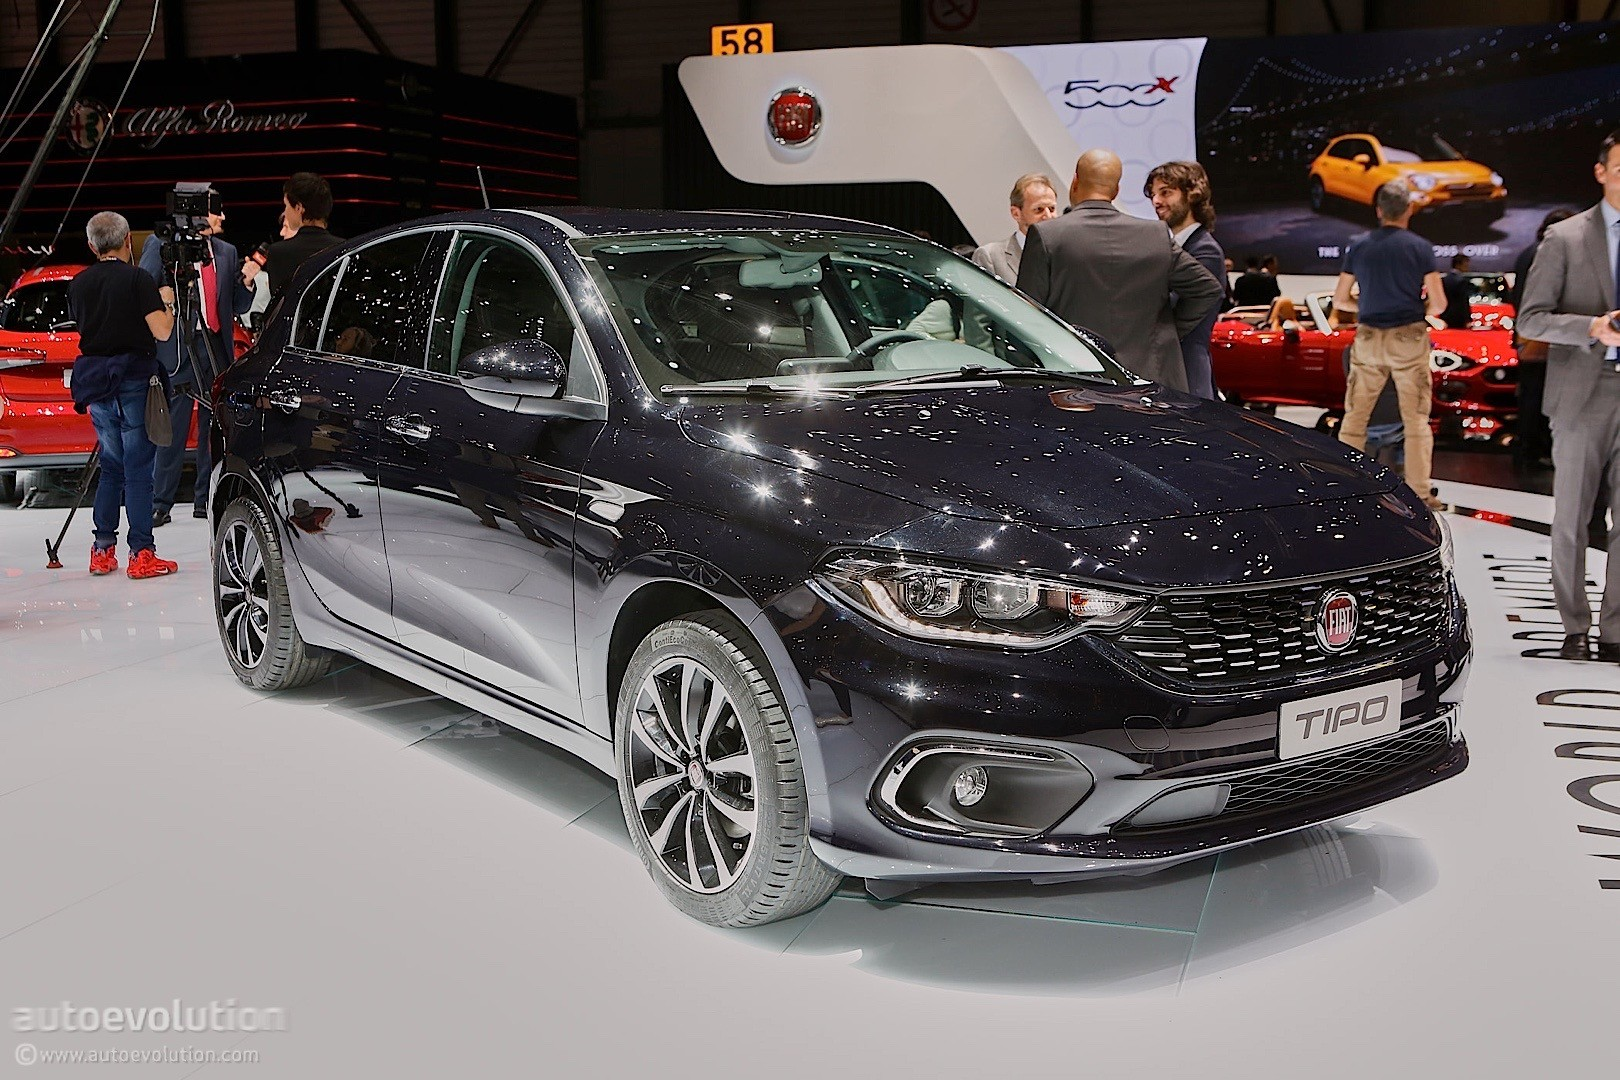 2016 Fiat Tipo Hatchback Priced at €12,750 in Italy, Station Wagon at €15,900 - autoevolution